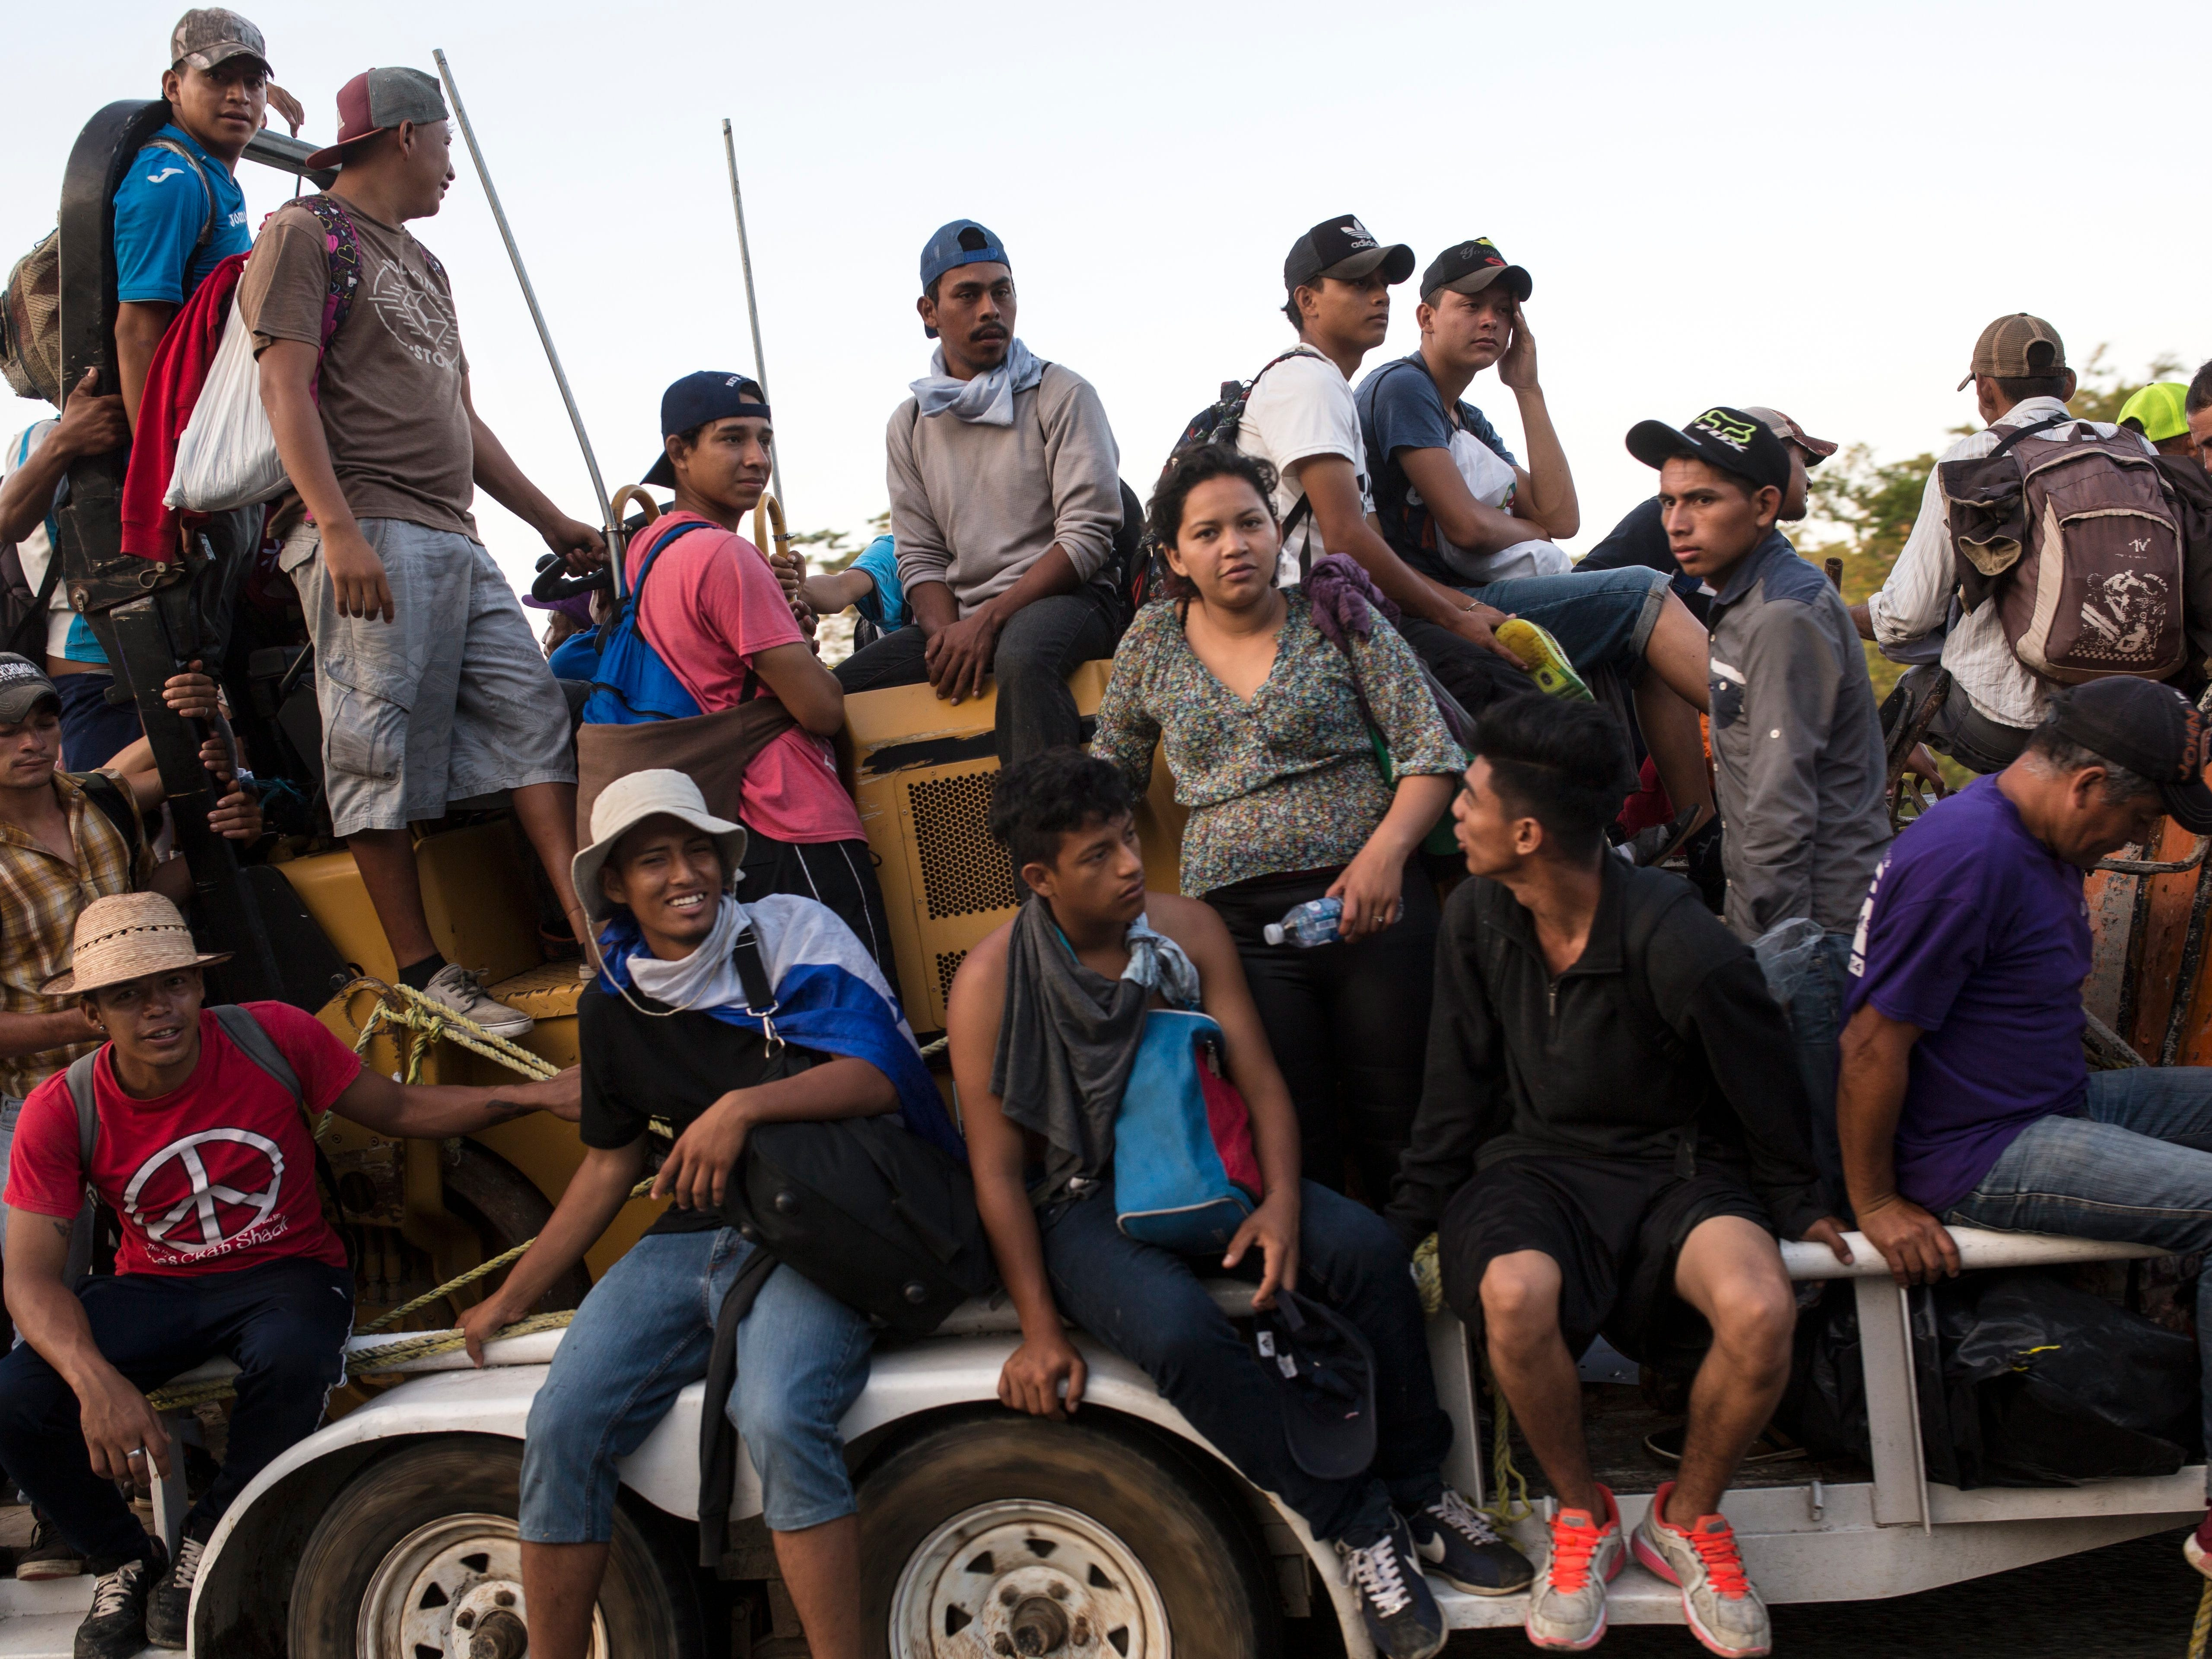 Central American migrants traveling with a caravan to the U.S. crowd onto a tractor as they make their way to Mapastepec, Mexico, Wednesday, Oct. 24, 2018. Thousands of Central American migrants renewed their hoped-for march to the United States on Wednesday, setting out before dawn with plans to travel another 45 miles of the more than 1,000 miles that still lie before them.